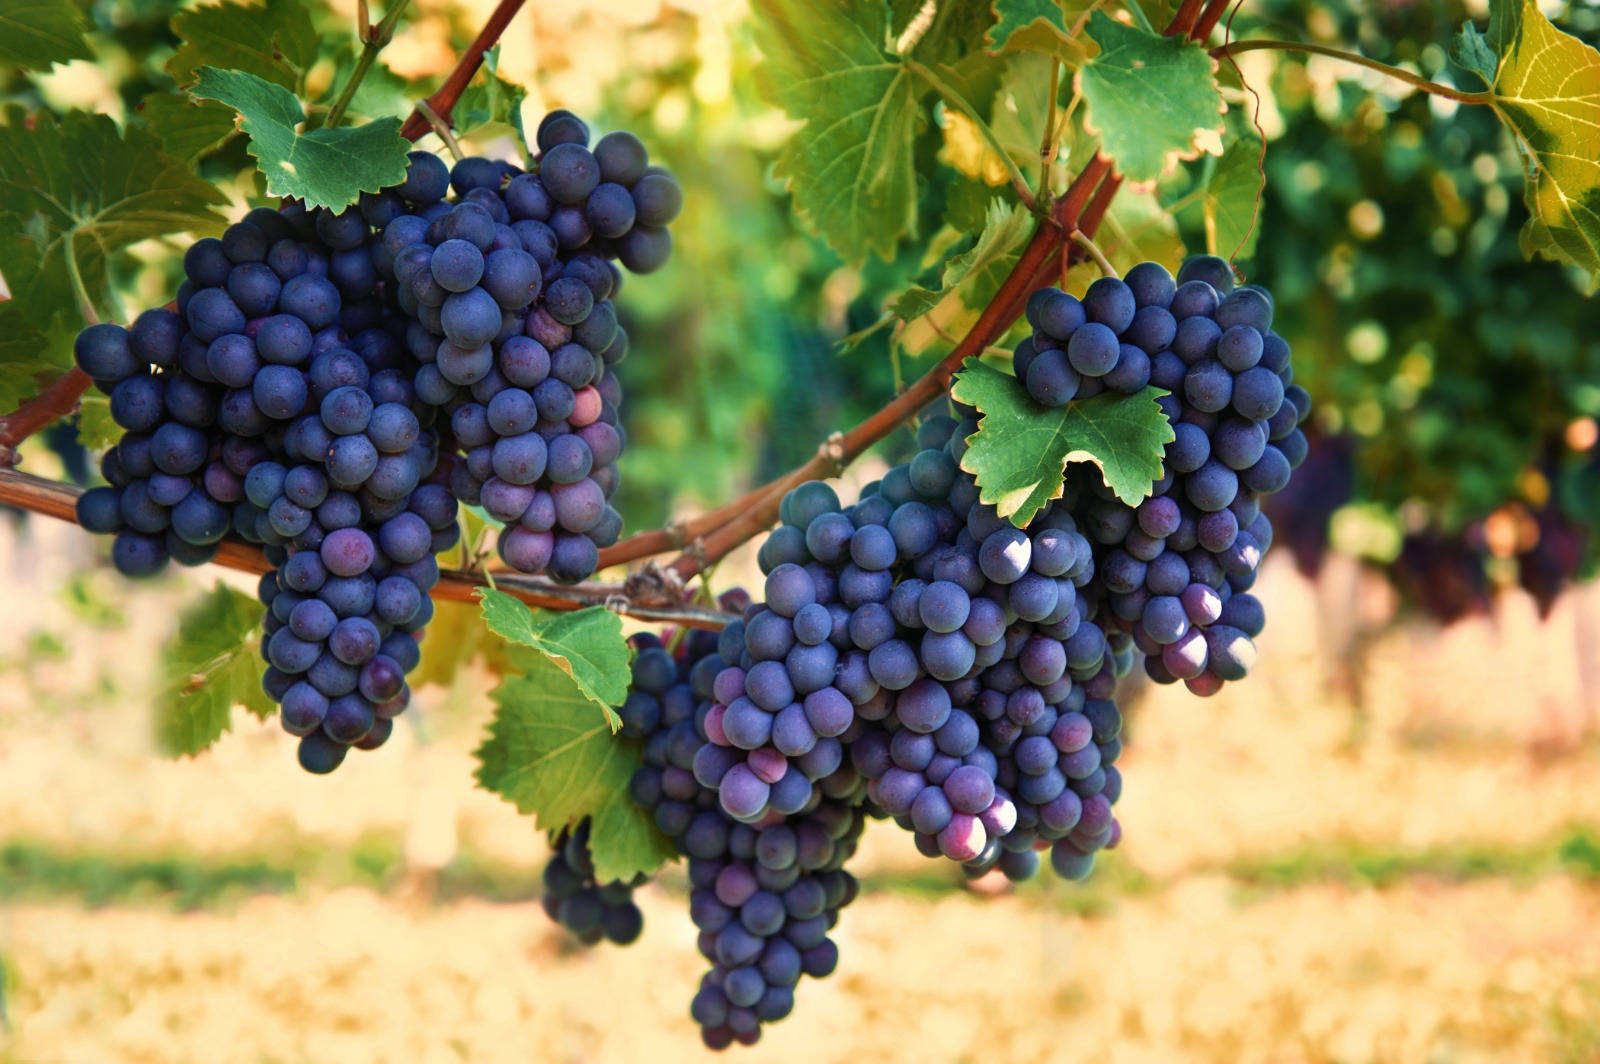 Resonon Hyperspectral Imaging Systems have been used to scan grapes